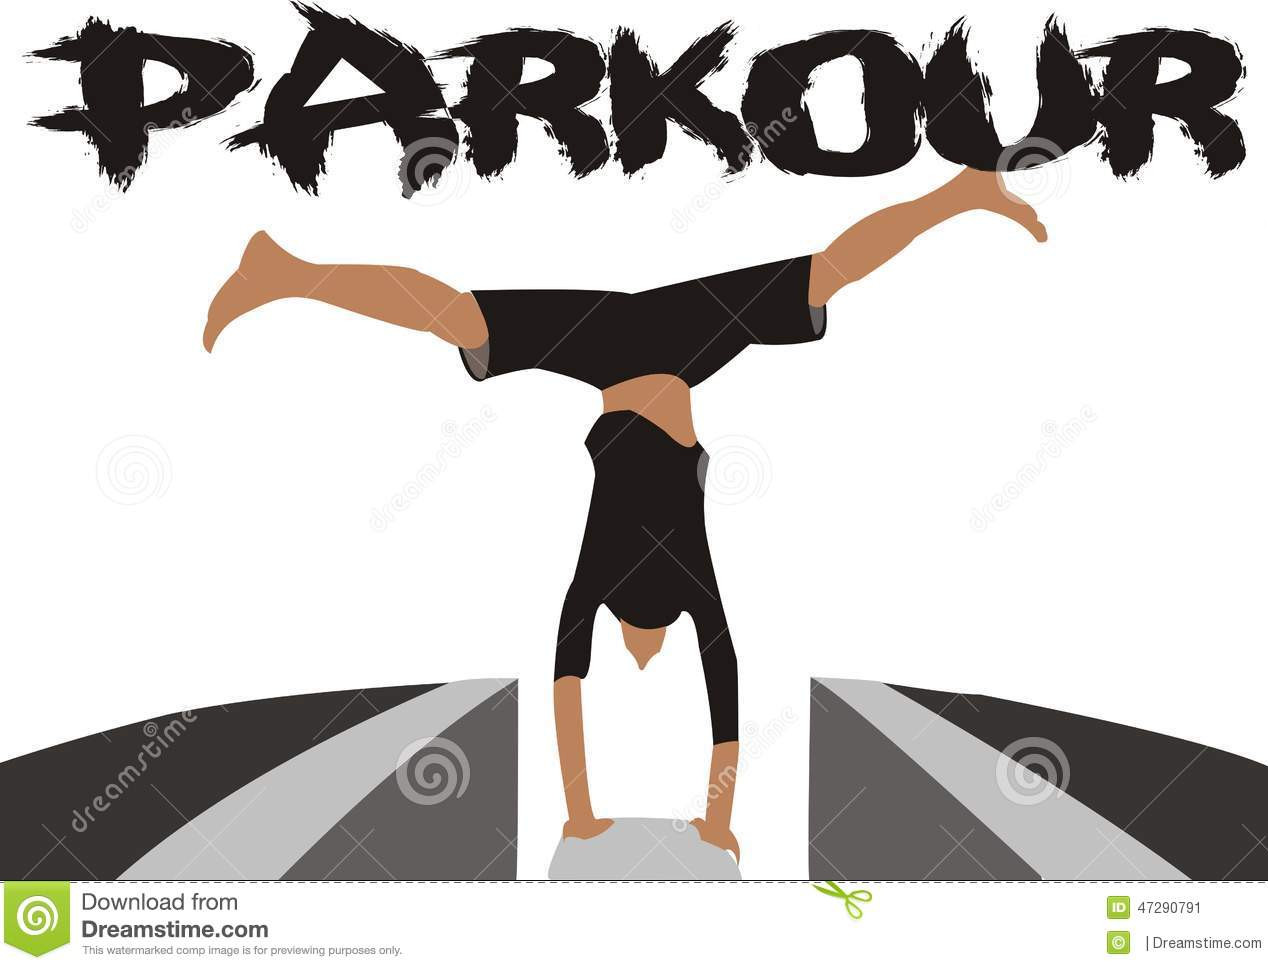 parkour-vector-holistic-training-discipl